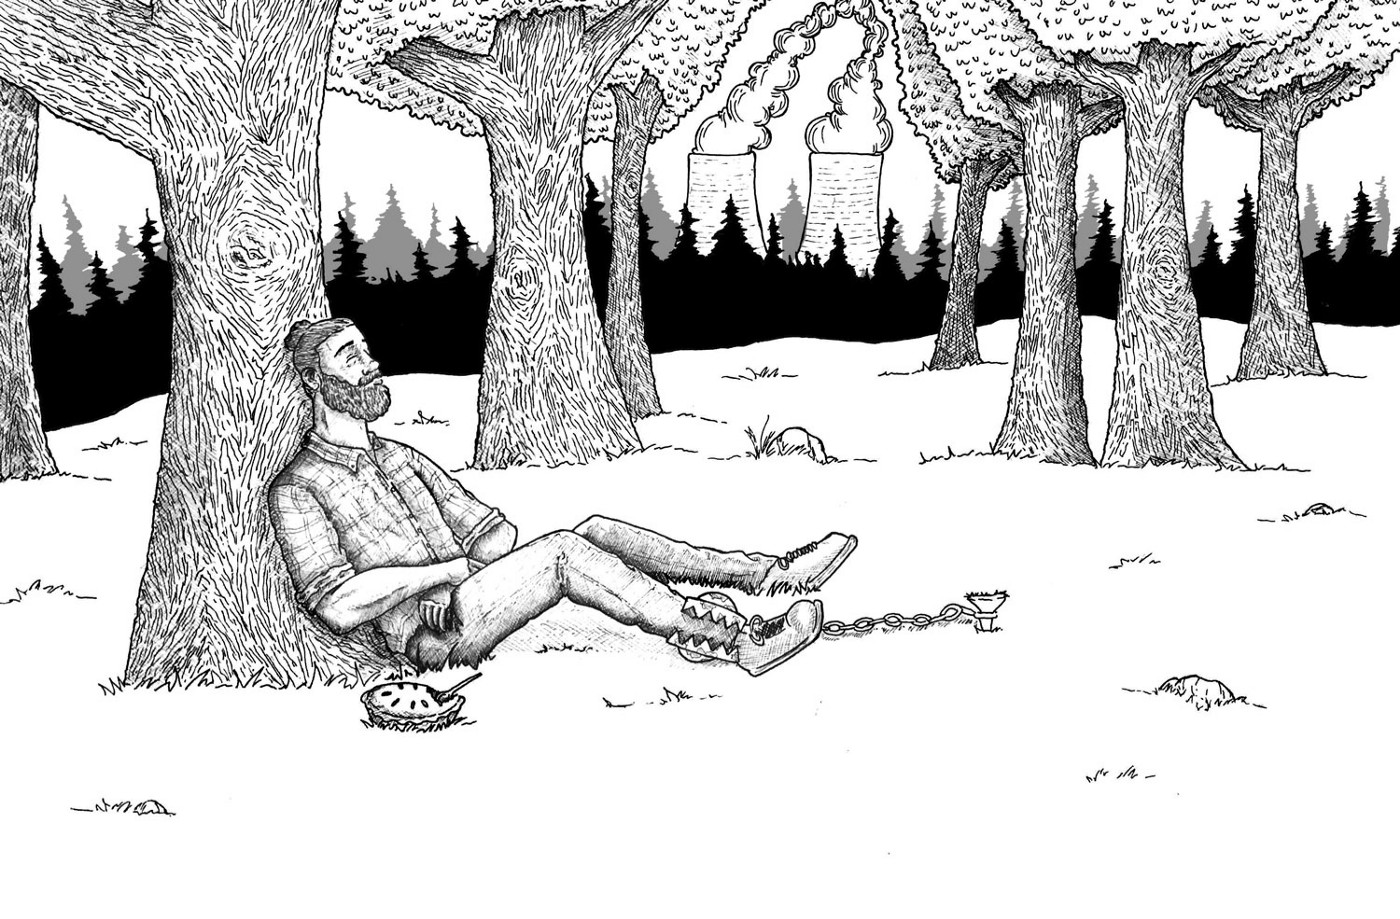 A pen-and-ink black and white drawing of a man in a forest leaning against a tree trunk.